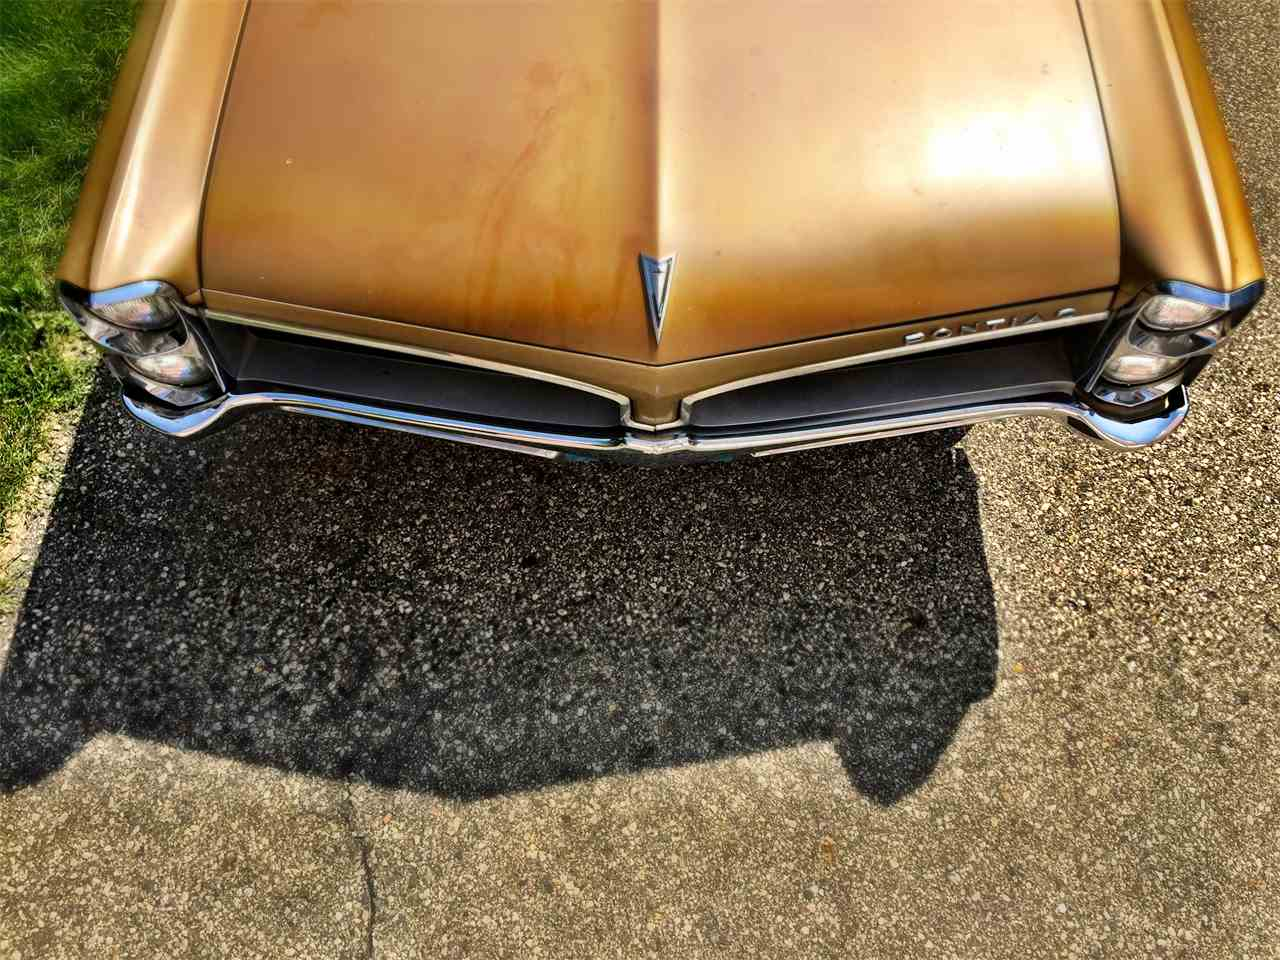 Large Picture of Classic 1967 Pontiac LeMans located in Wisconsin - $12,000.00 Offered by a Private Seller - J9C1